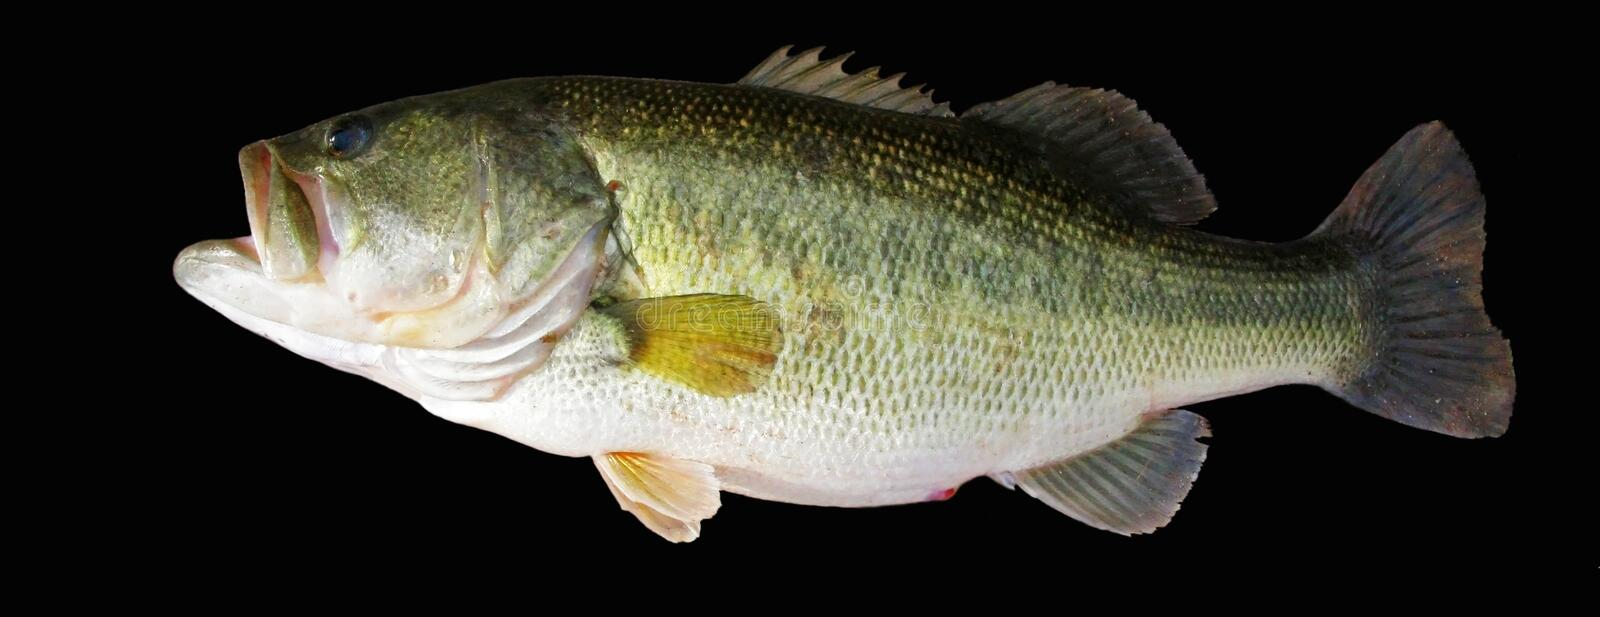 Large Mouth Bass stock image